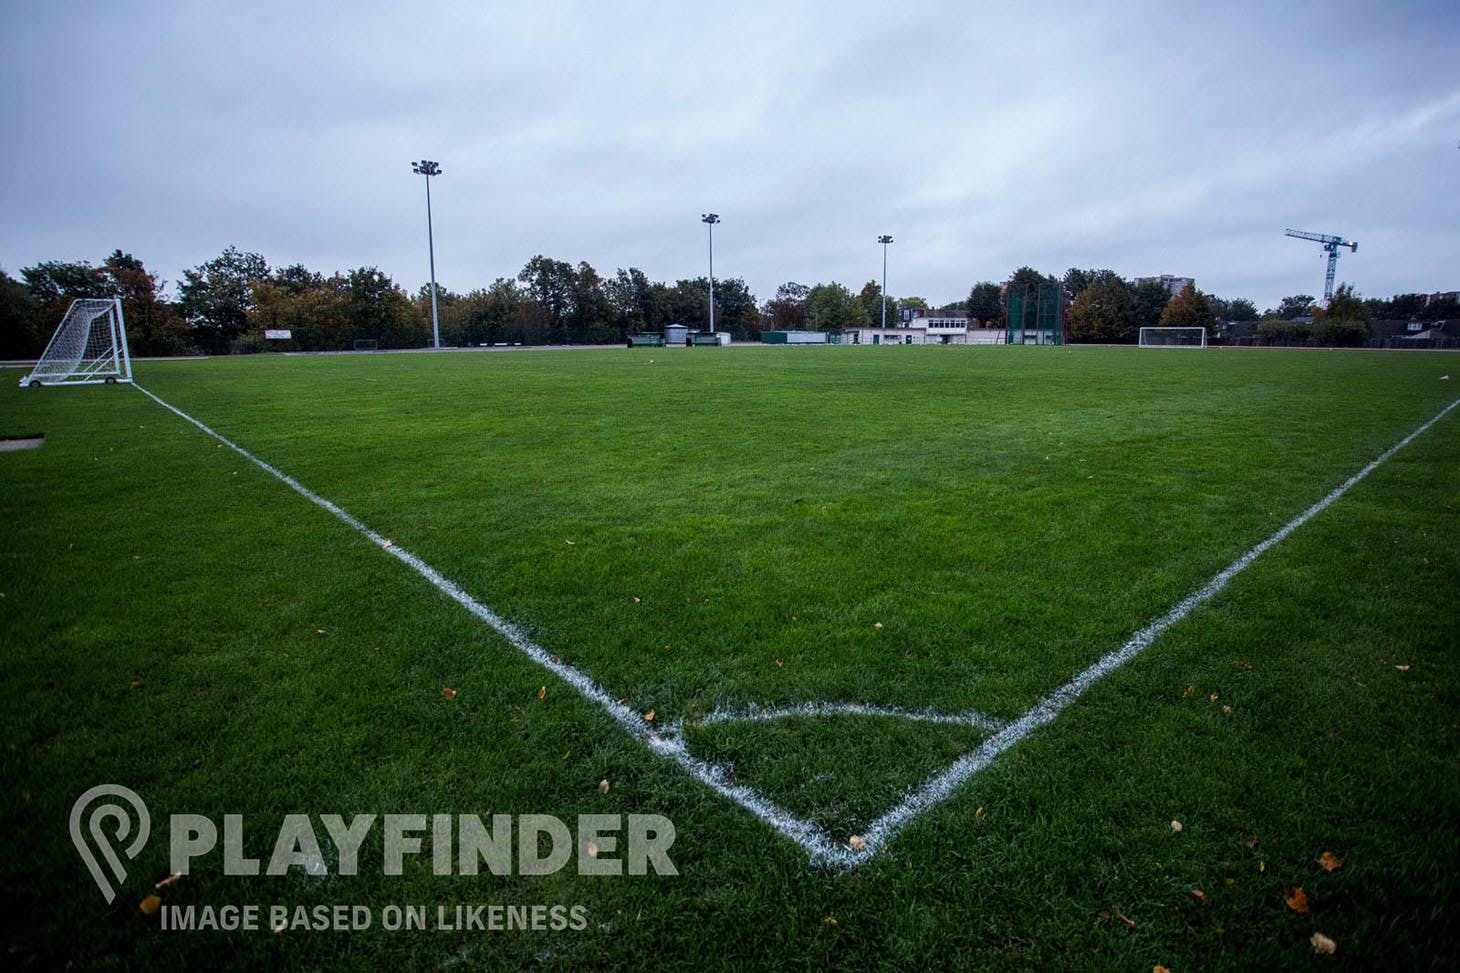 Bevendean Recreation Ground 11 a side | Grass football pitch